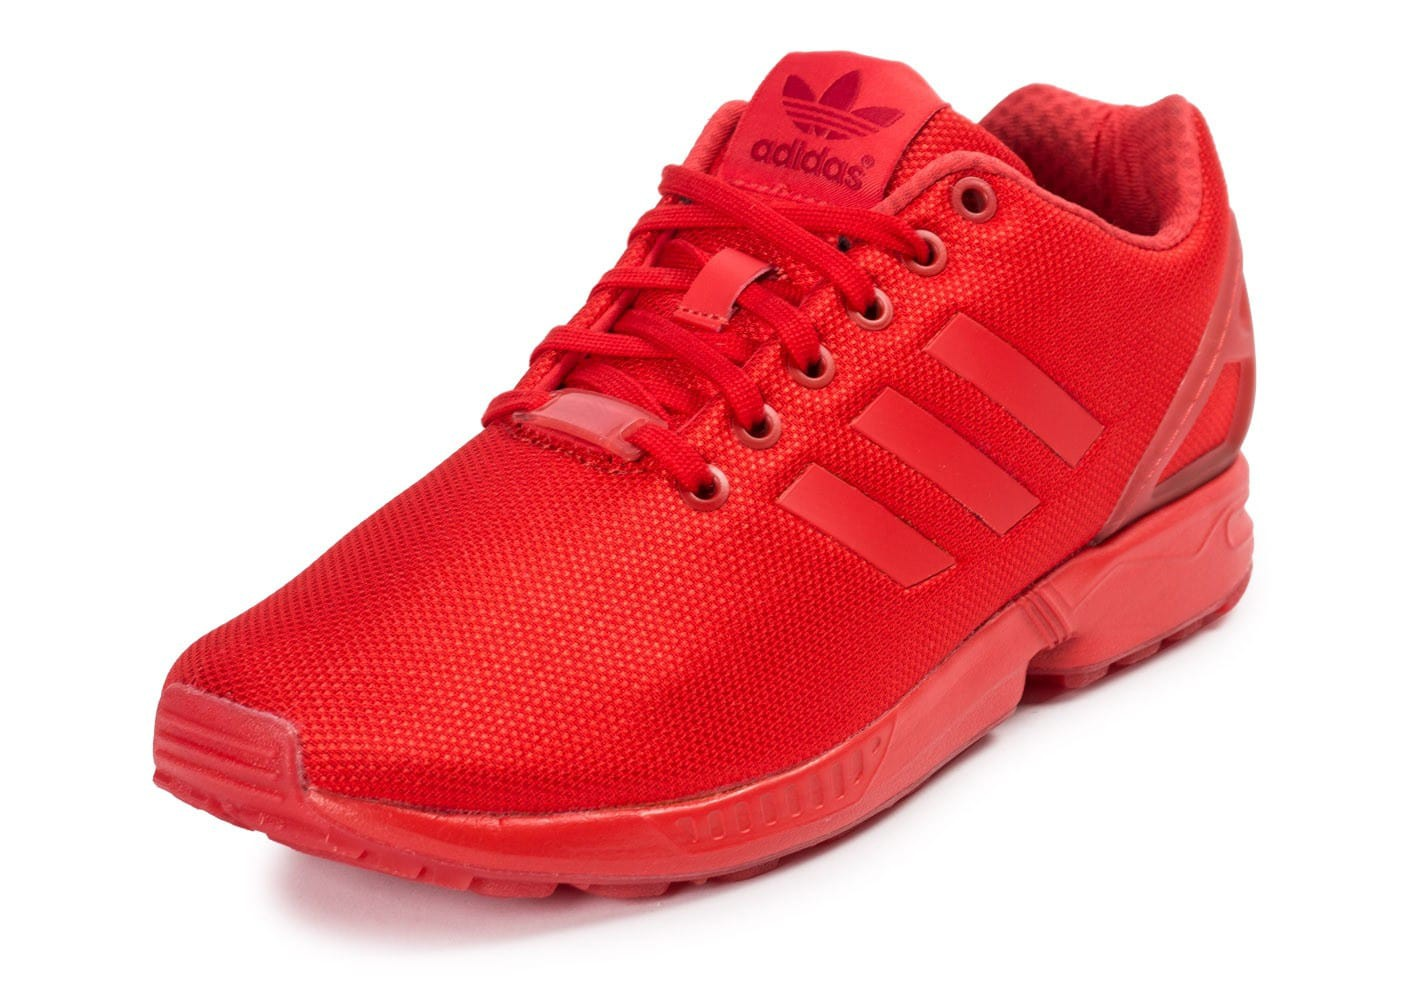 zx flux rouge Off 60% - www.bashhguidelines.org